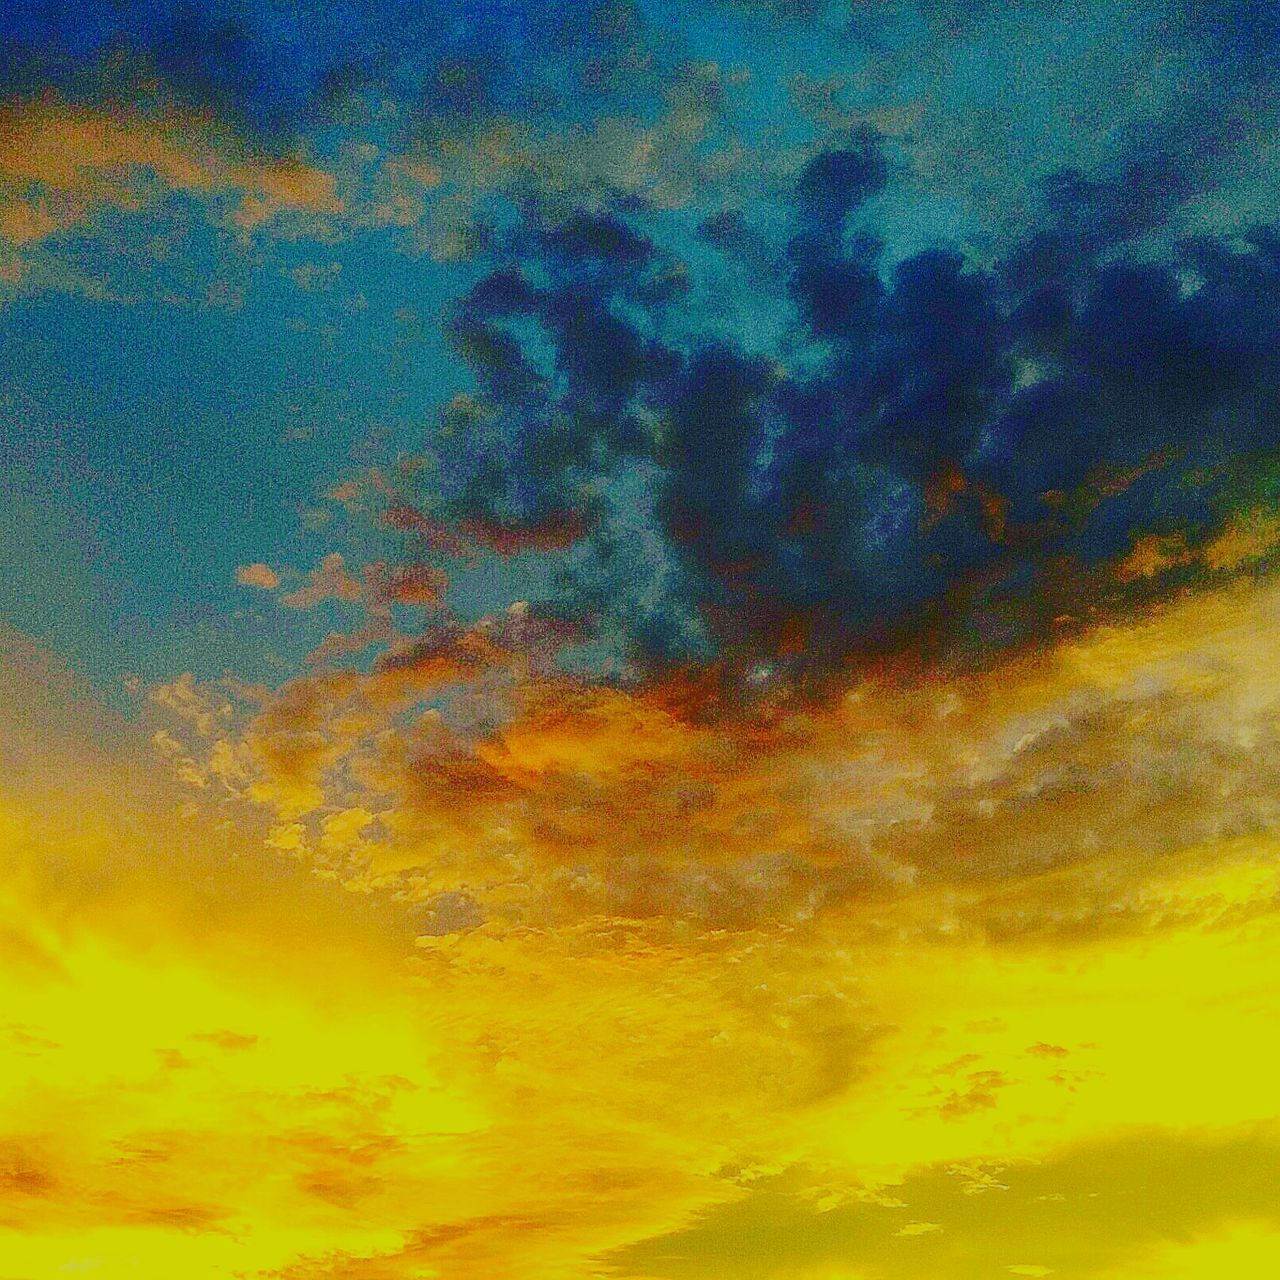 sky, cloud - sky, dramatic sky, sunset, abstract, orange color, low angle view, beauty in nature, backgrounds, nature, sky only, yellow, no people, full frame, outdoors, scenics, multi colored, tranquility, blue, day